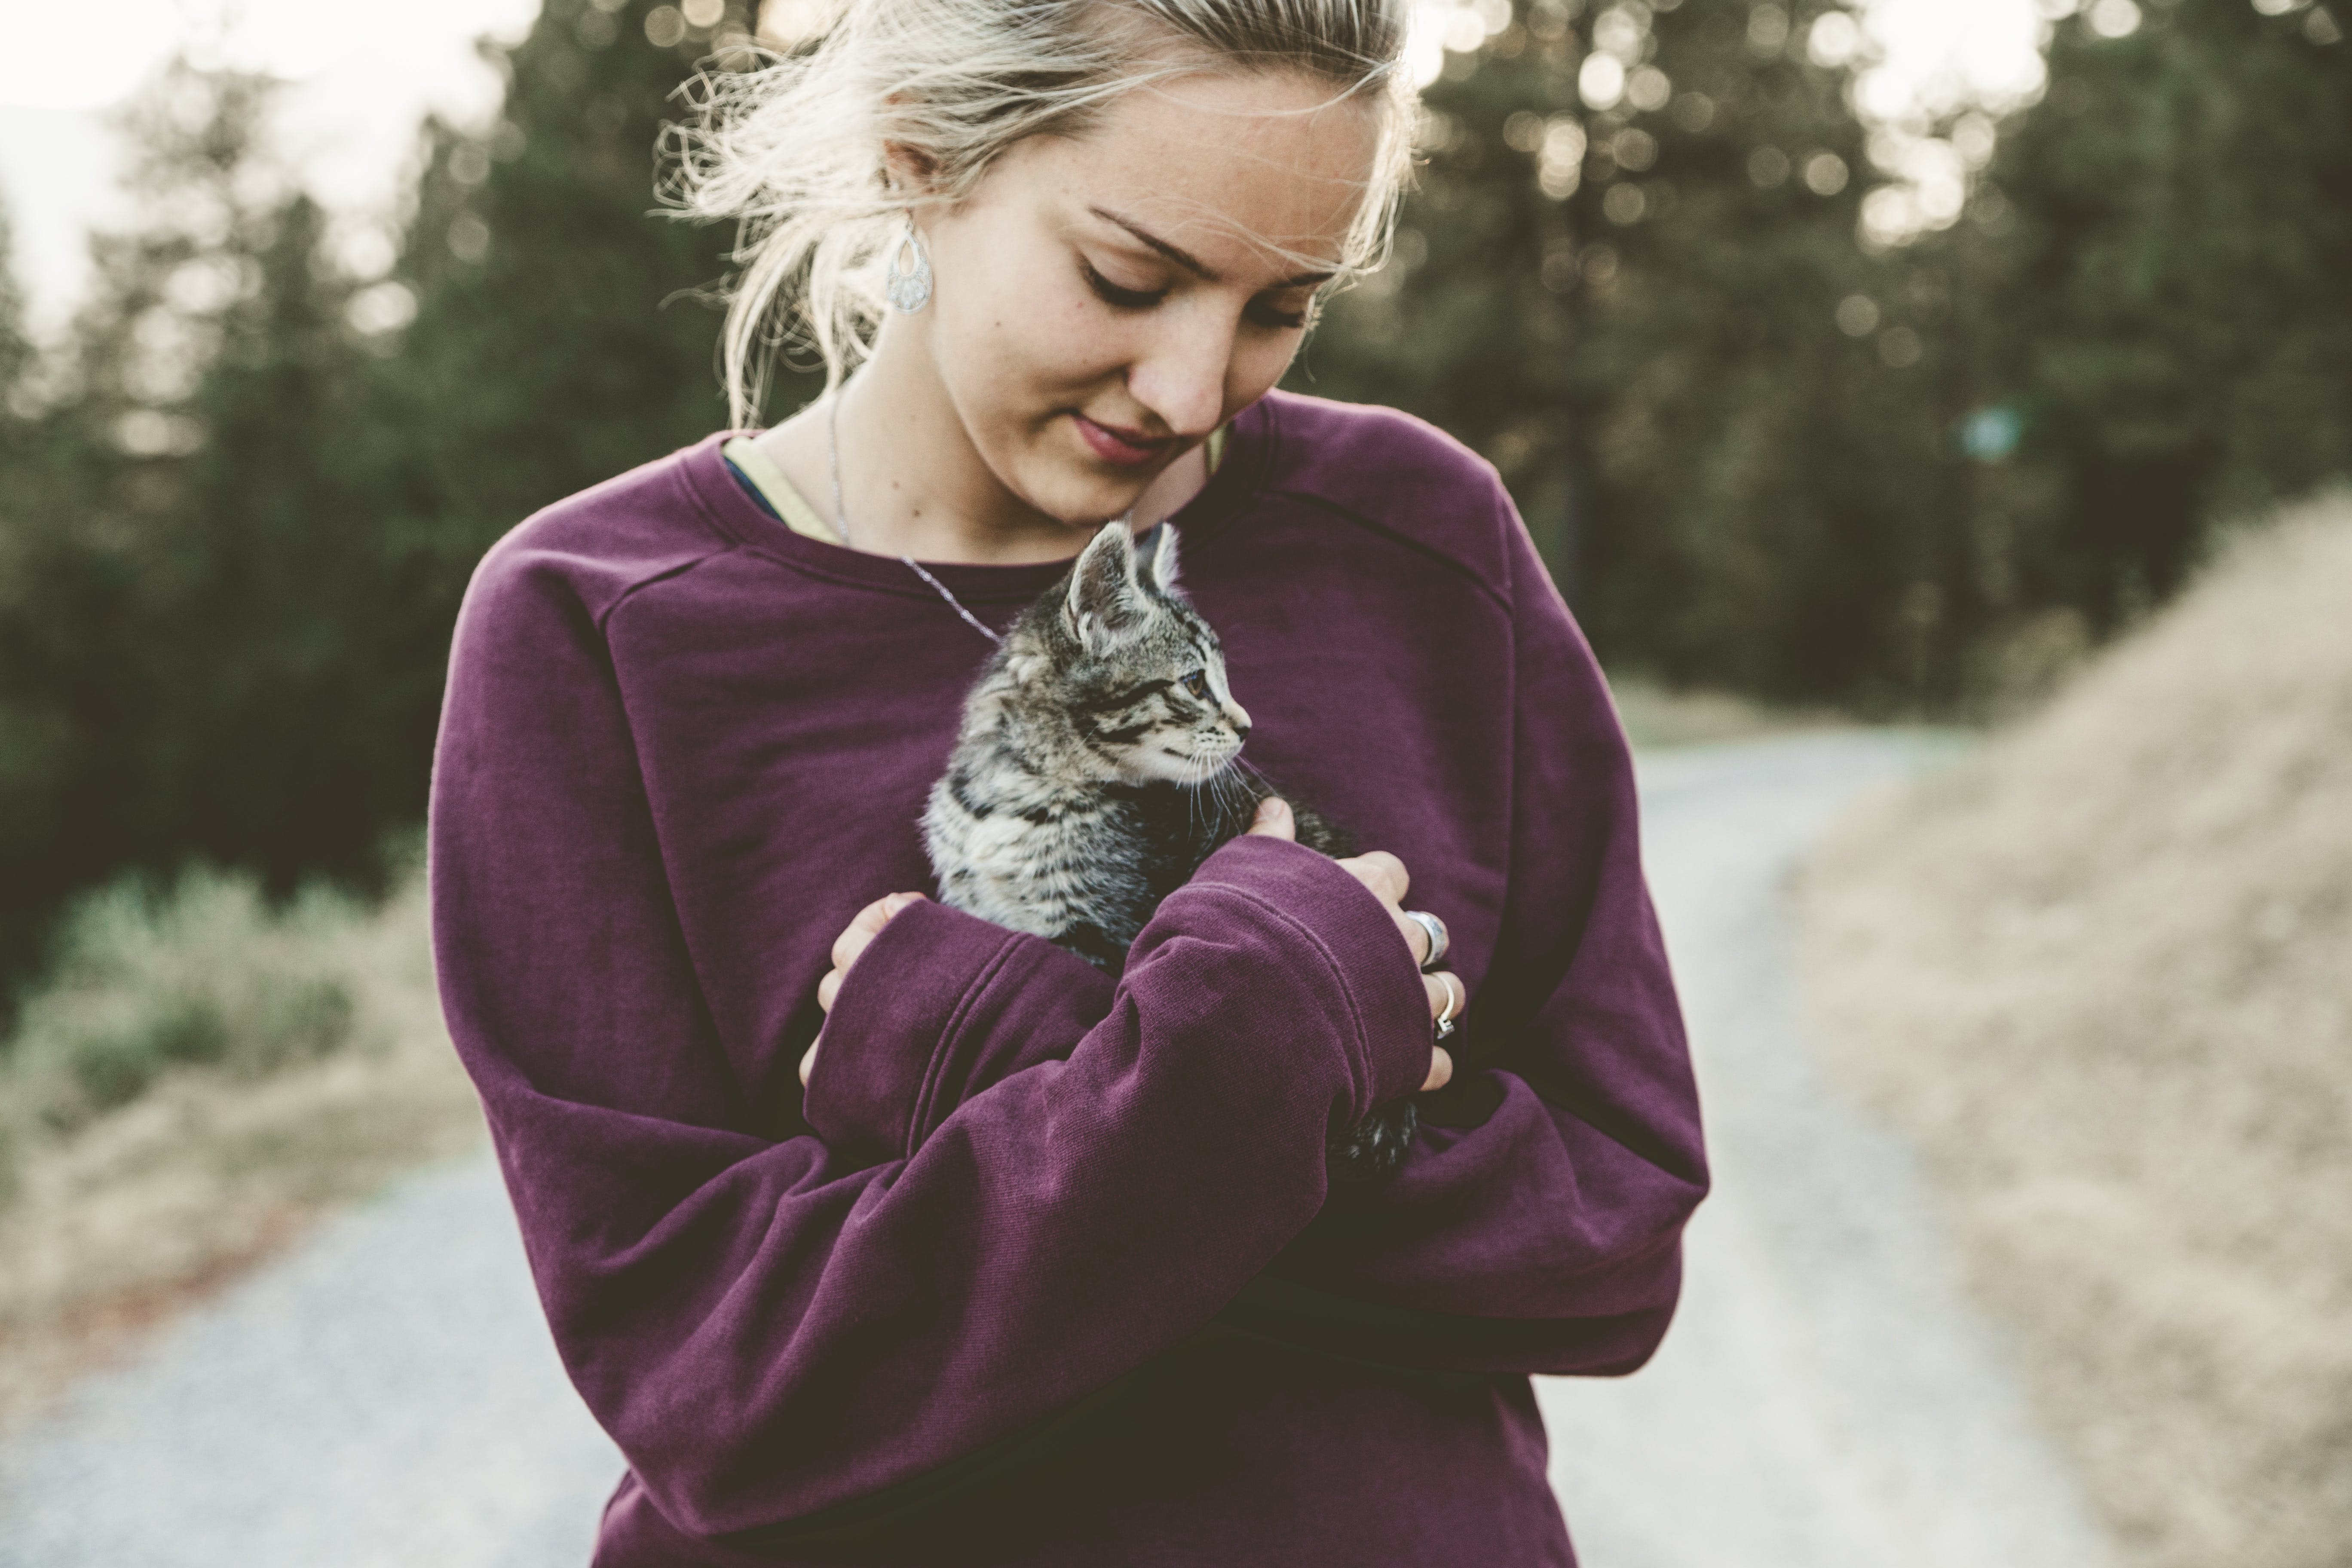 Selective Focus Photography of Woman Wearing Purple Sweater Holding Silver Tabby Cat